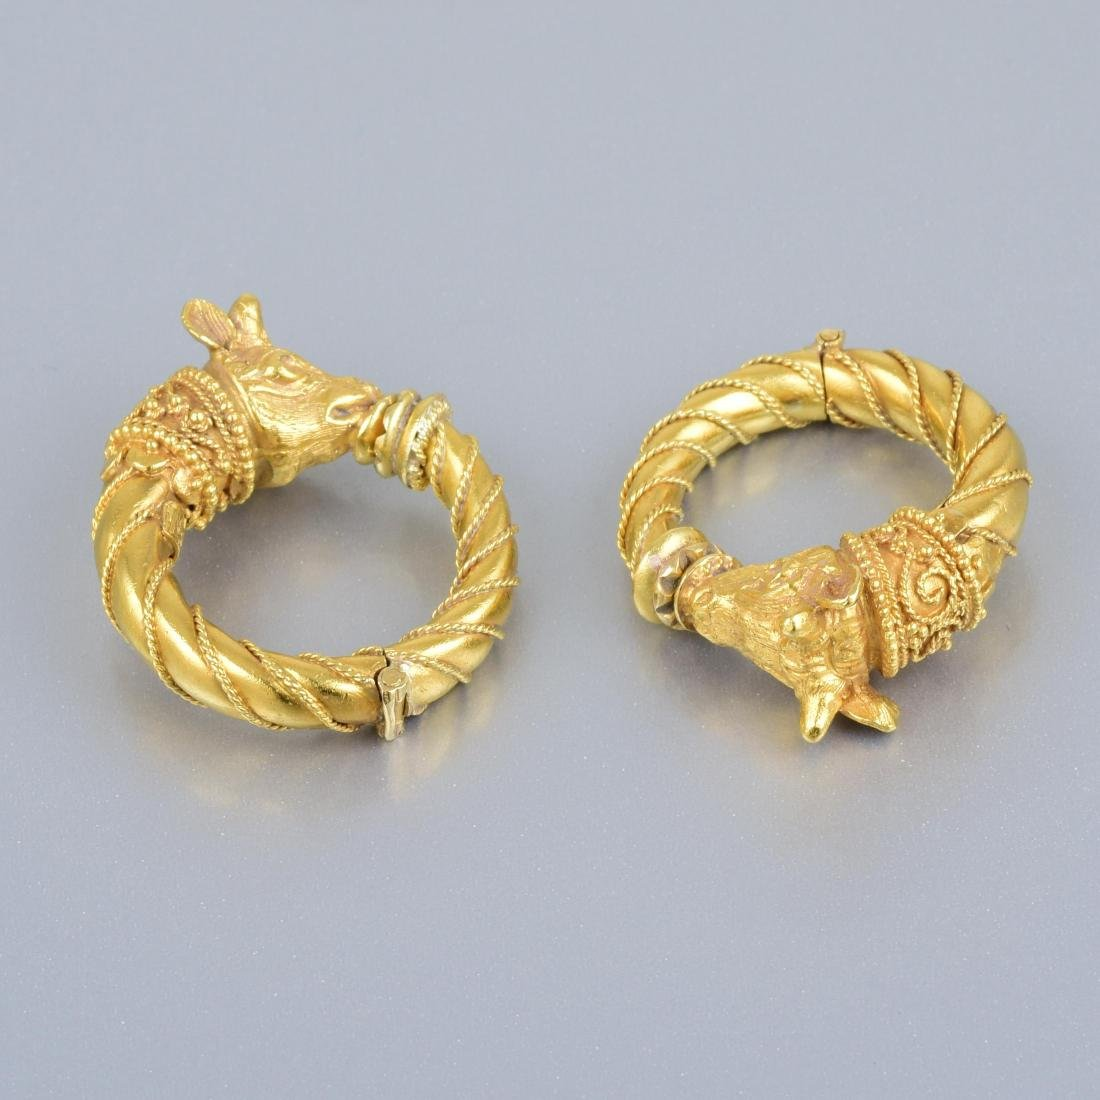 Zolotas Gold Ear Clips - 2